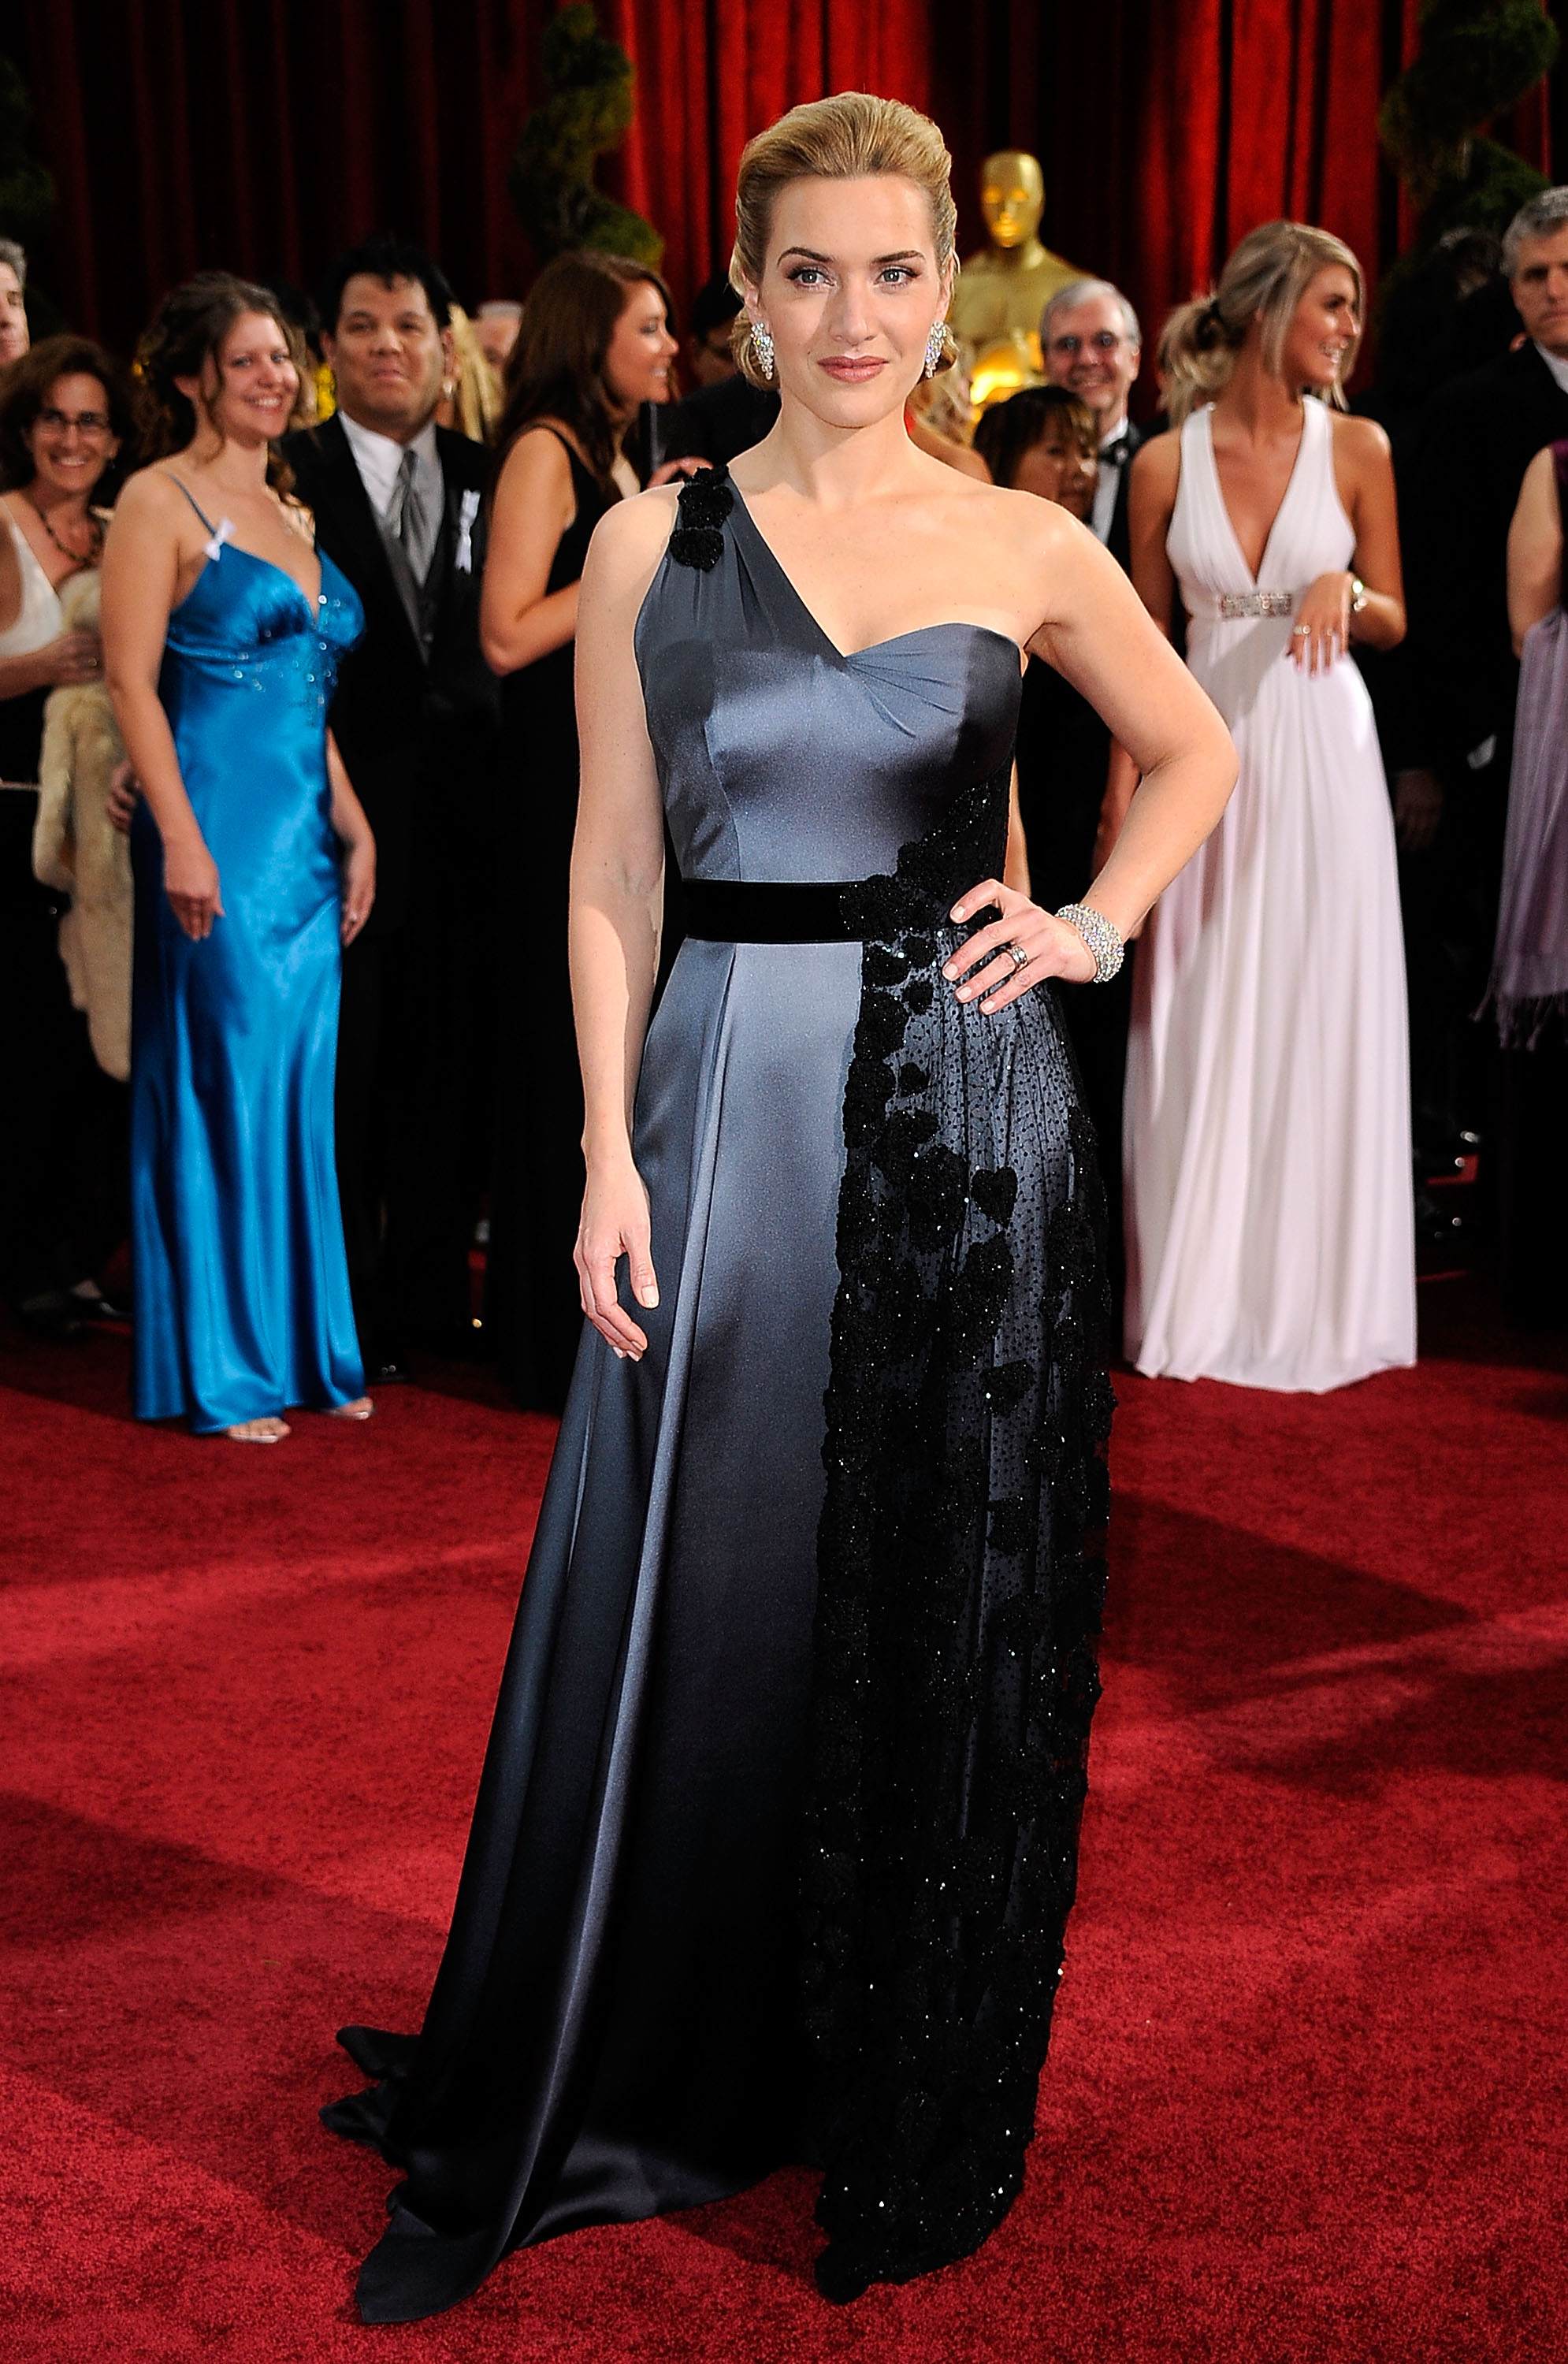 An Image of Kate Winslet at the 2009 Oscars